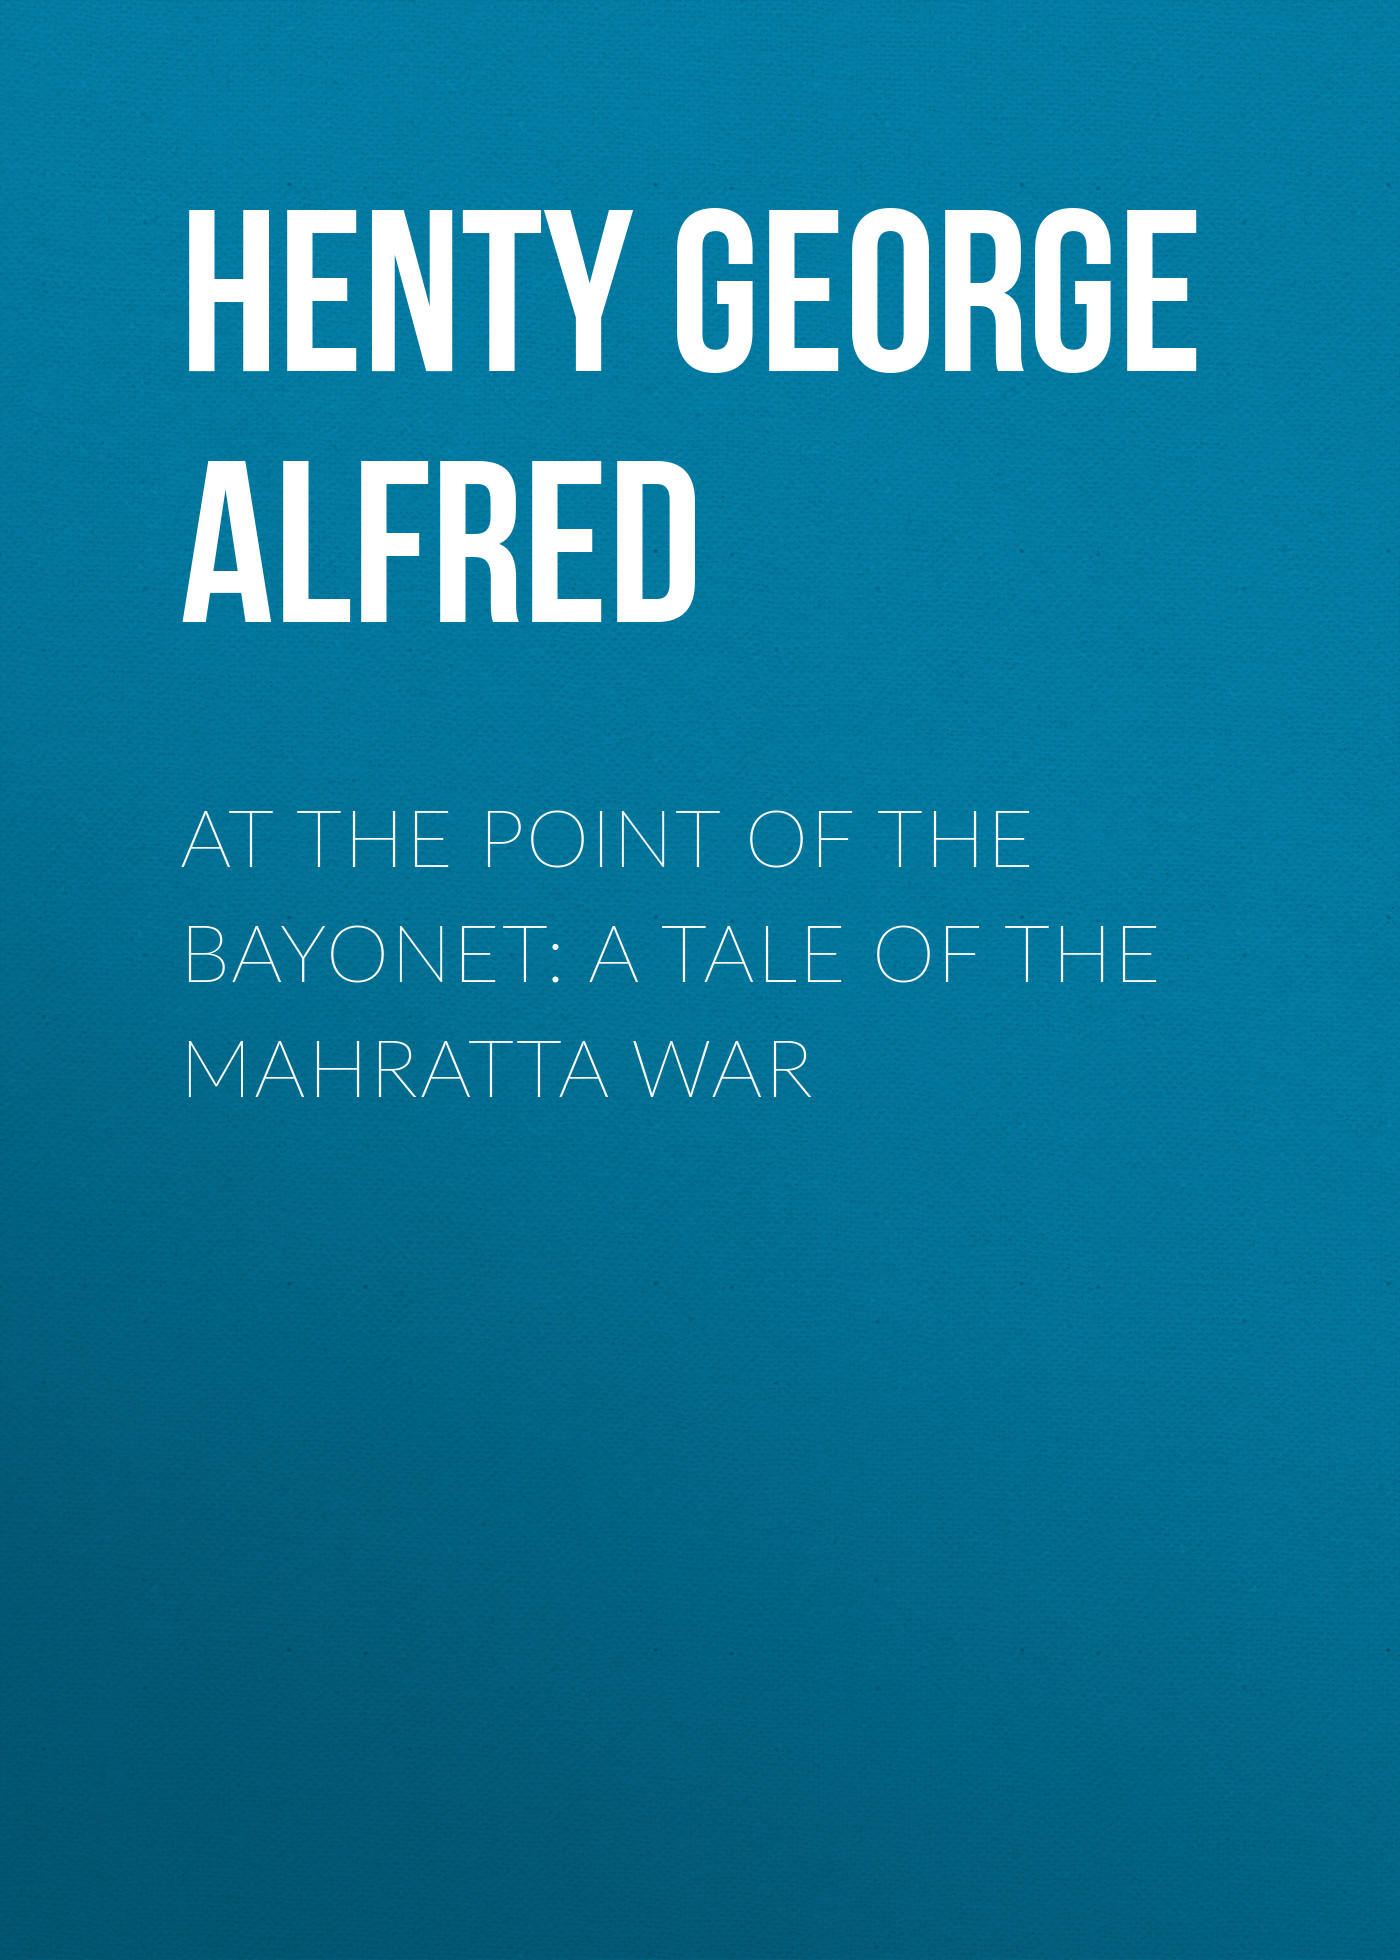 Henty George Alfred At the Point of the Bayonet: A Tale of the Mahratta War henty george alfred in the reign of terror the adventures of a westminster boy